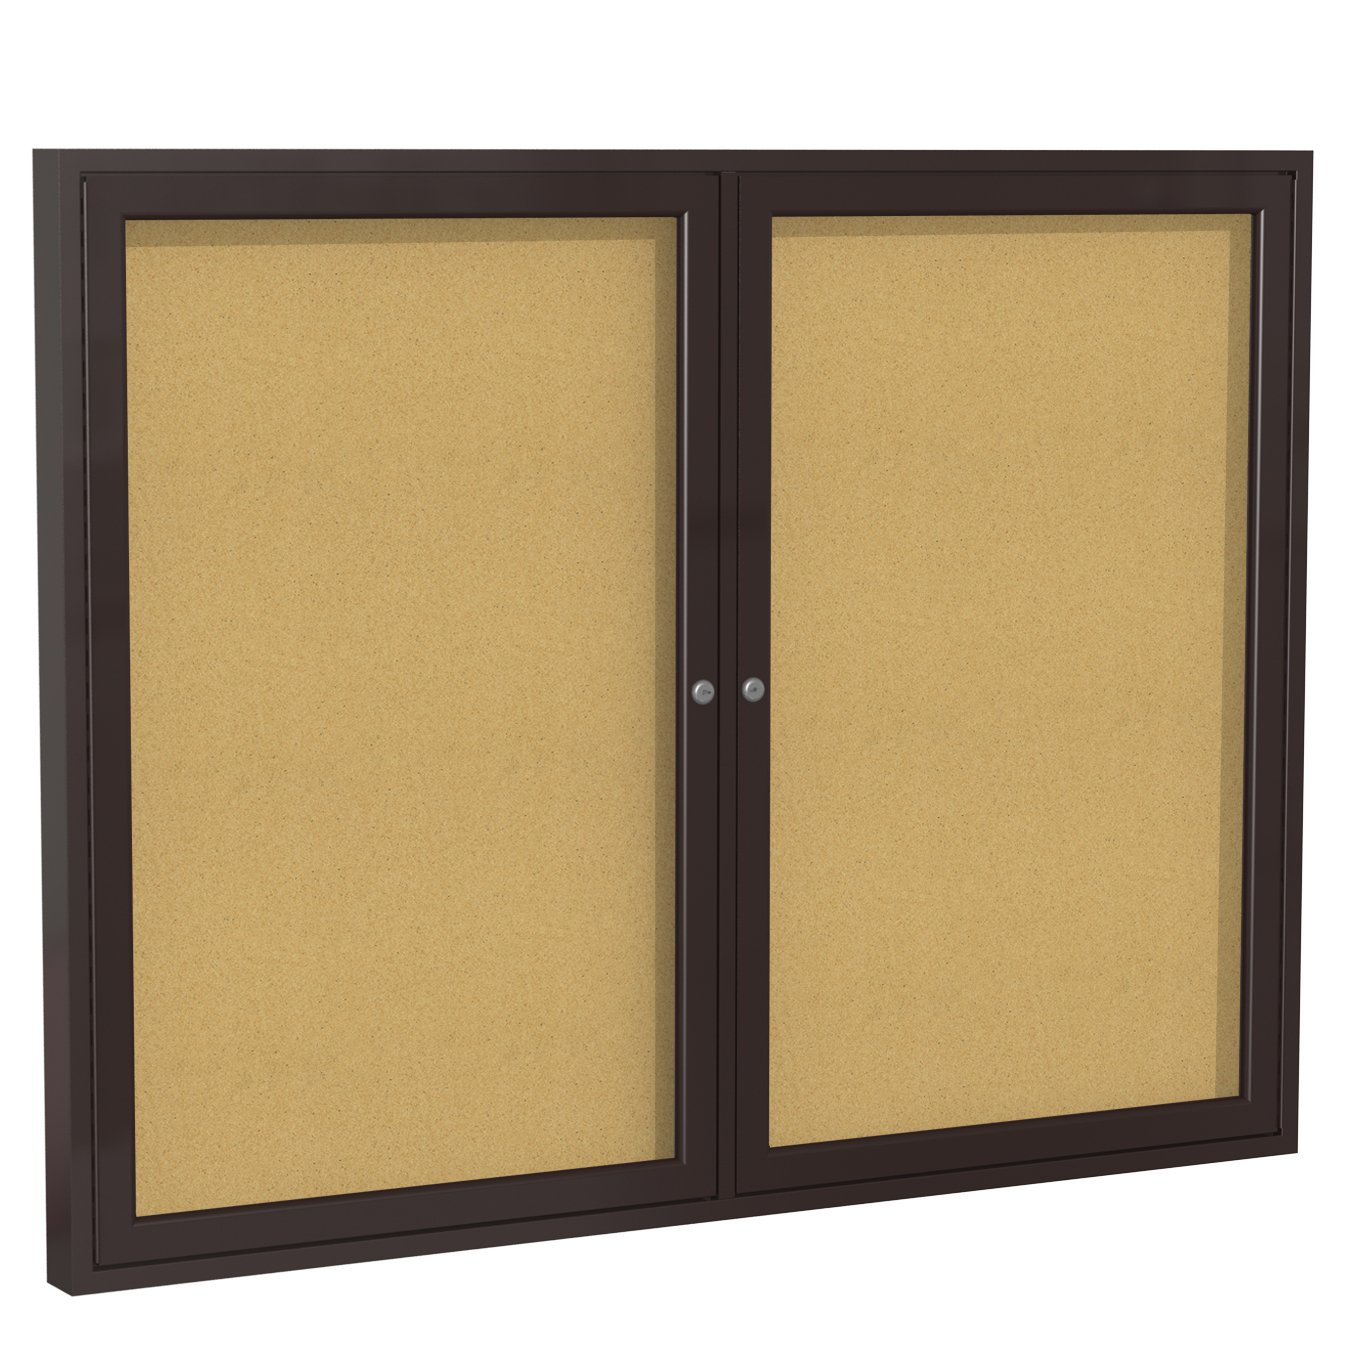 Ghent 36''x48''   2-Door indoor Enclosed Bulletin Board , Shatter Resistant, with Lock, Bronze Aluminum Frame  - Natural Cork (PB23648K)  Made in the USA